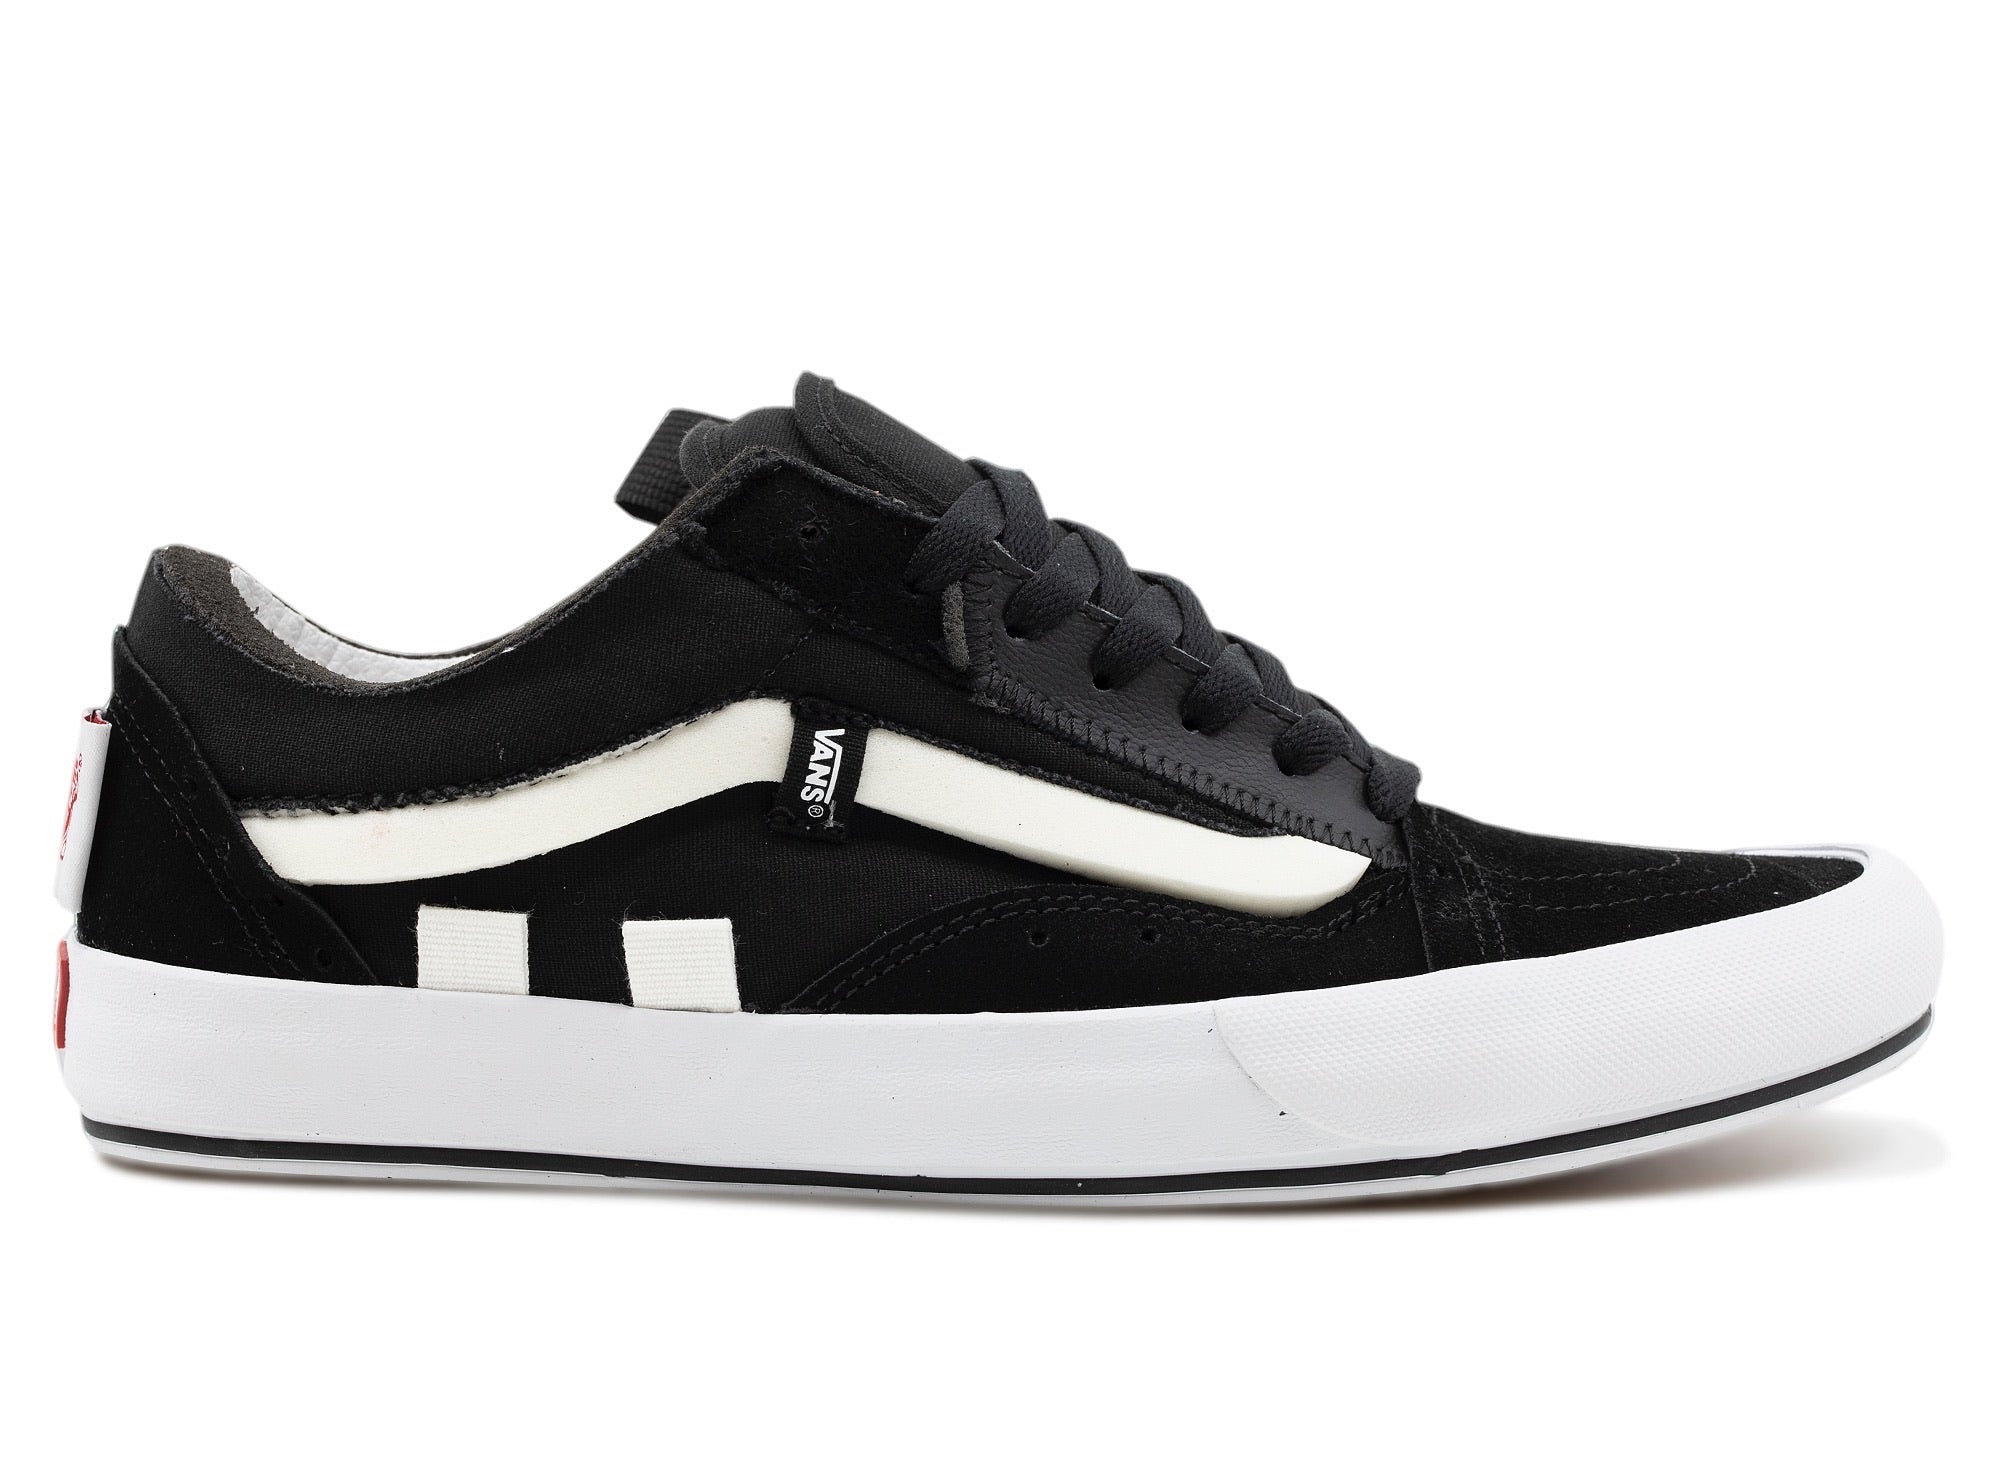 Vans Old Skool CAP xld